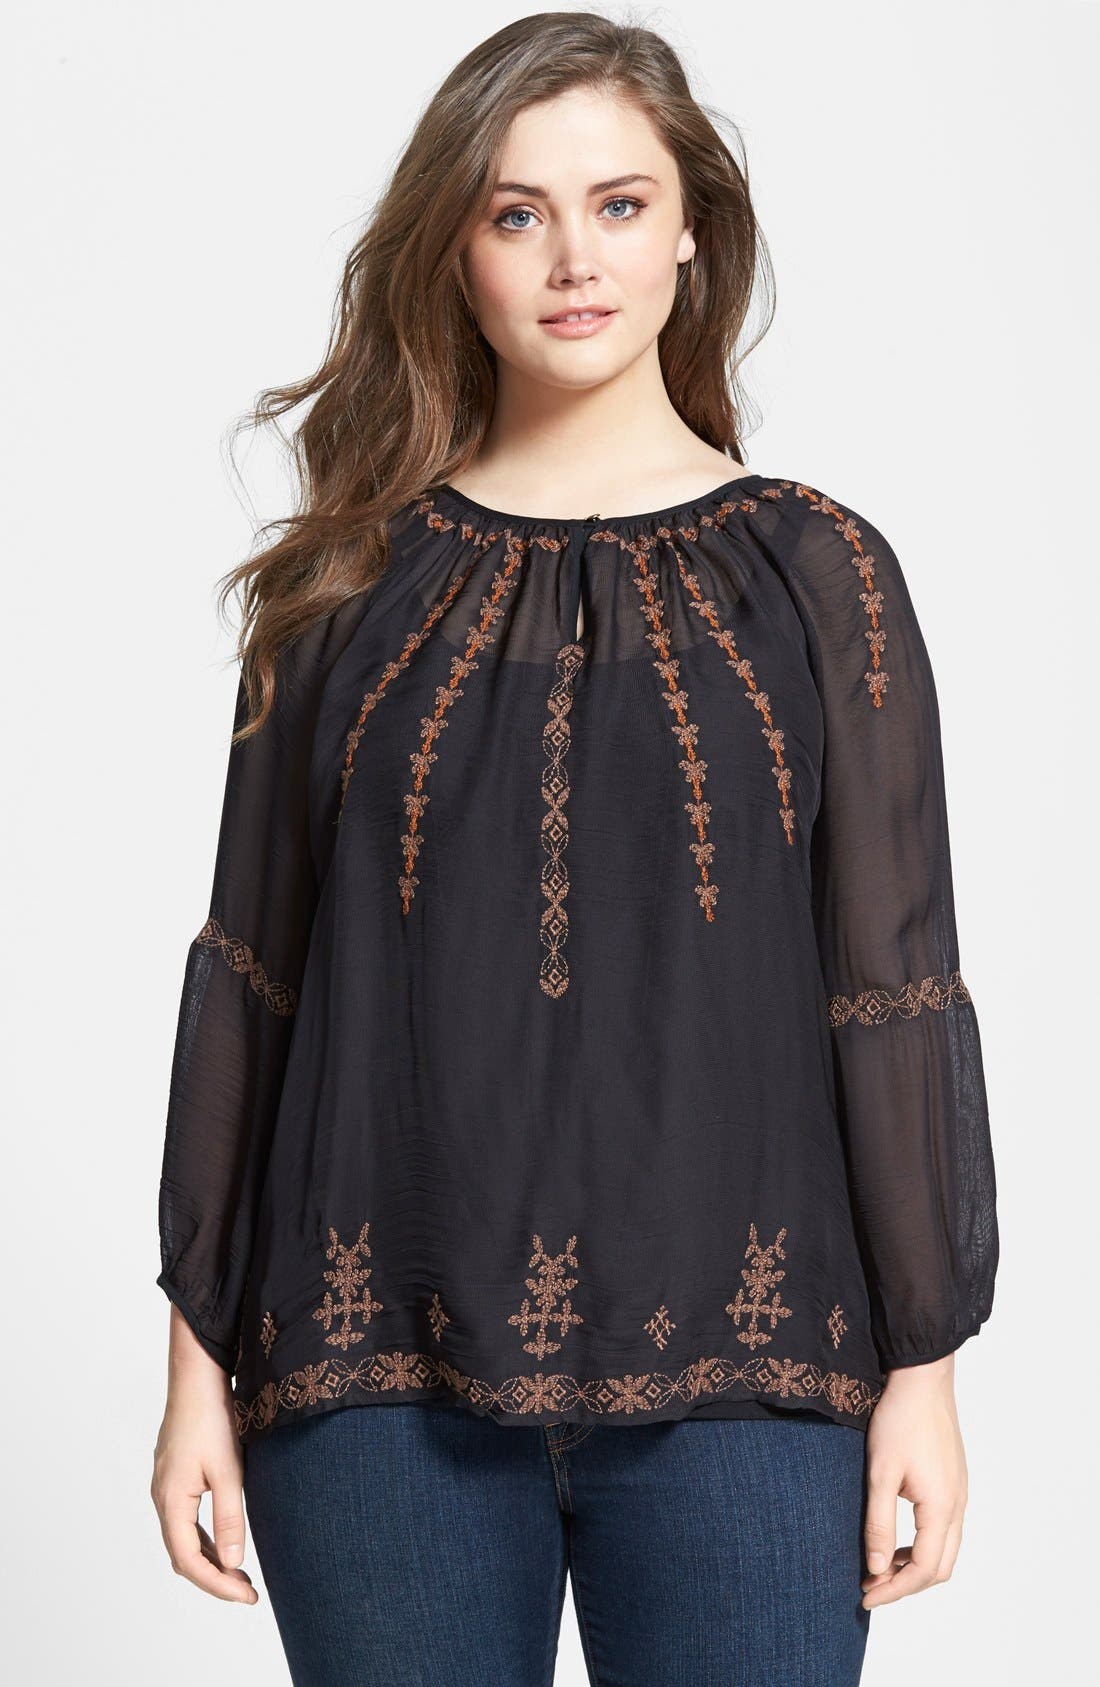 Alternate Image 1 Selected - Lucky Brand Embroidered Peasant Top (Plus Size)